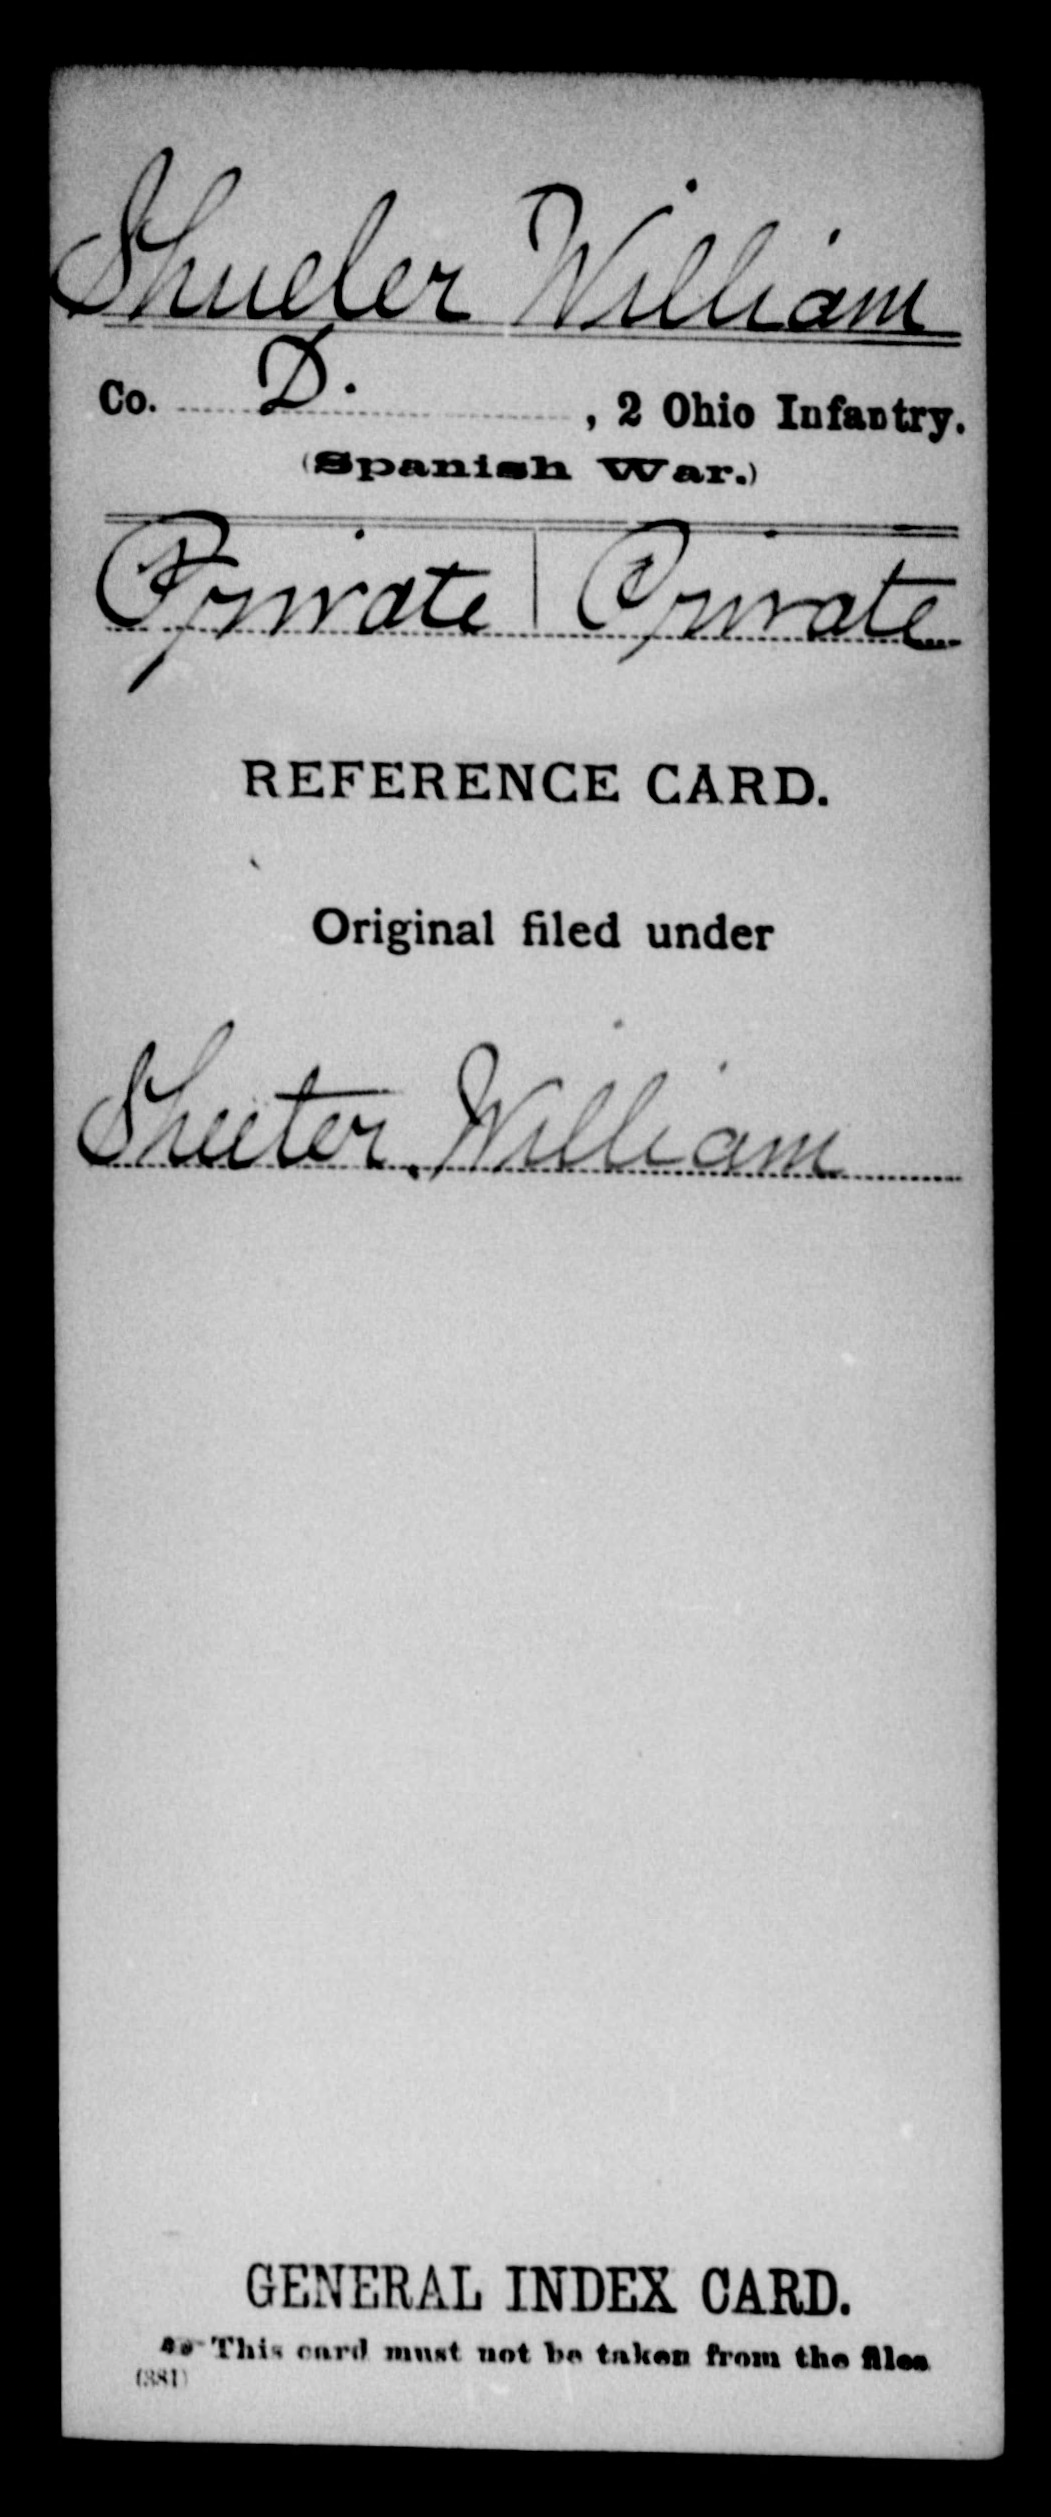 Shueler, William - State: Ohio - Regiment: 2 Ohio Infantry, Company D